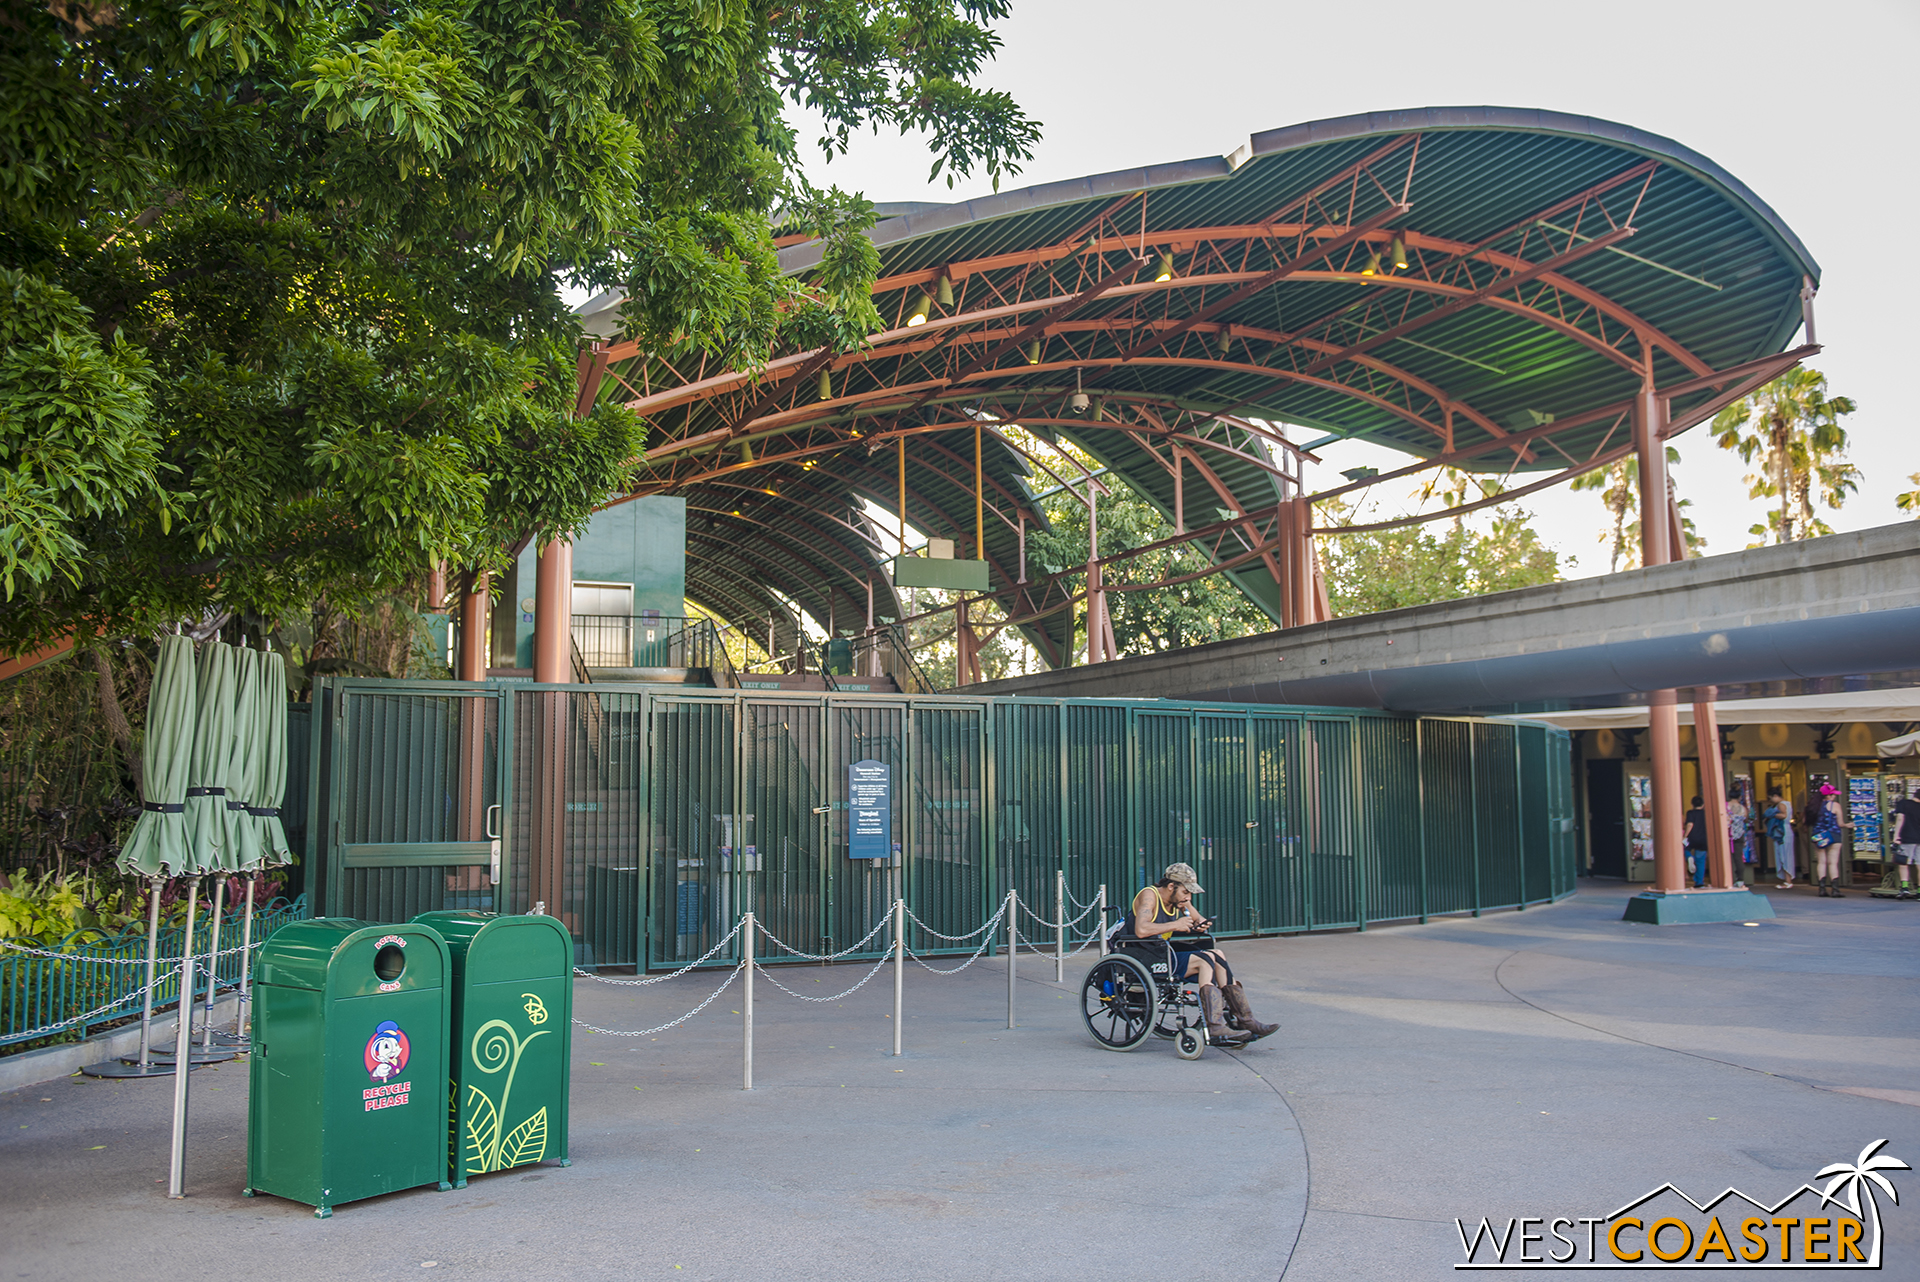 In fact, even the monorail stop is no longer in function.